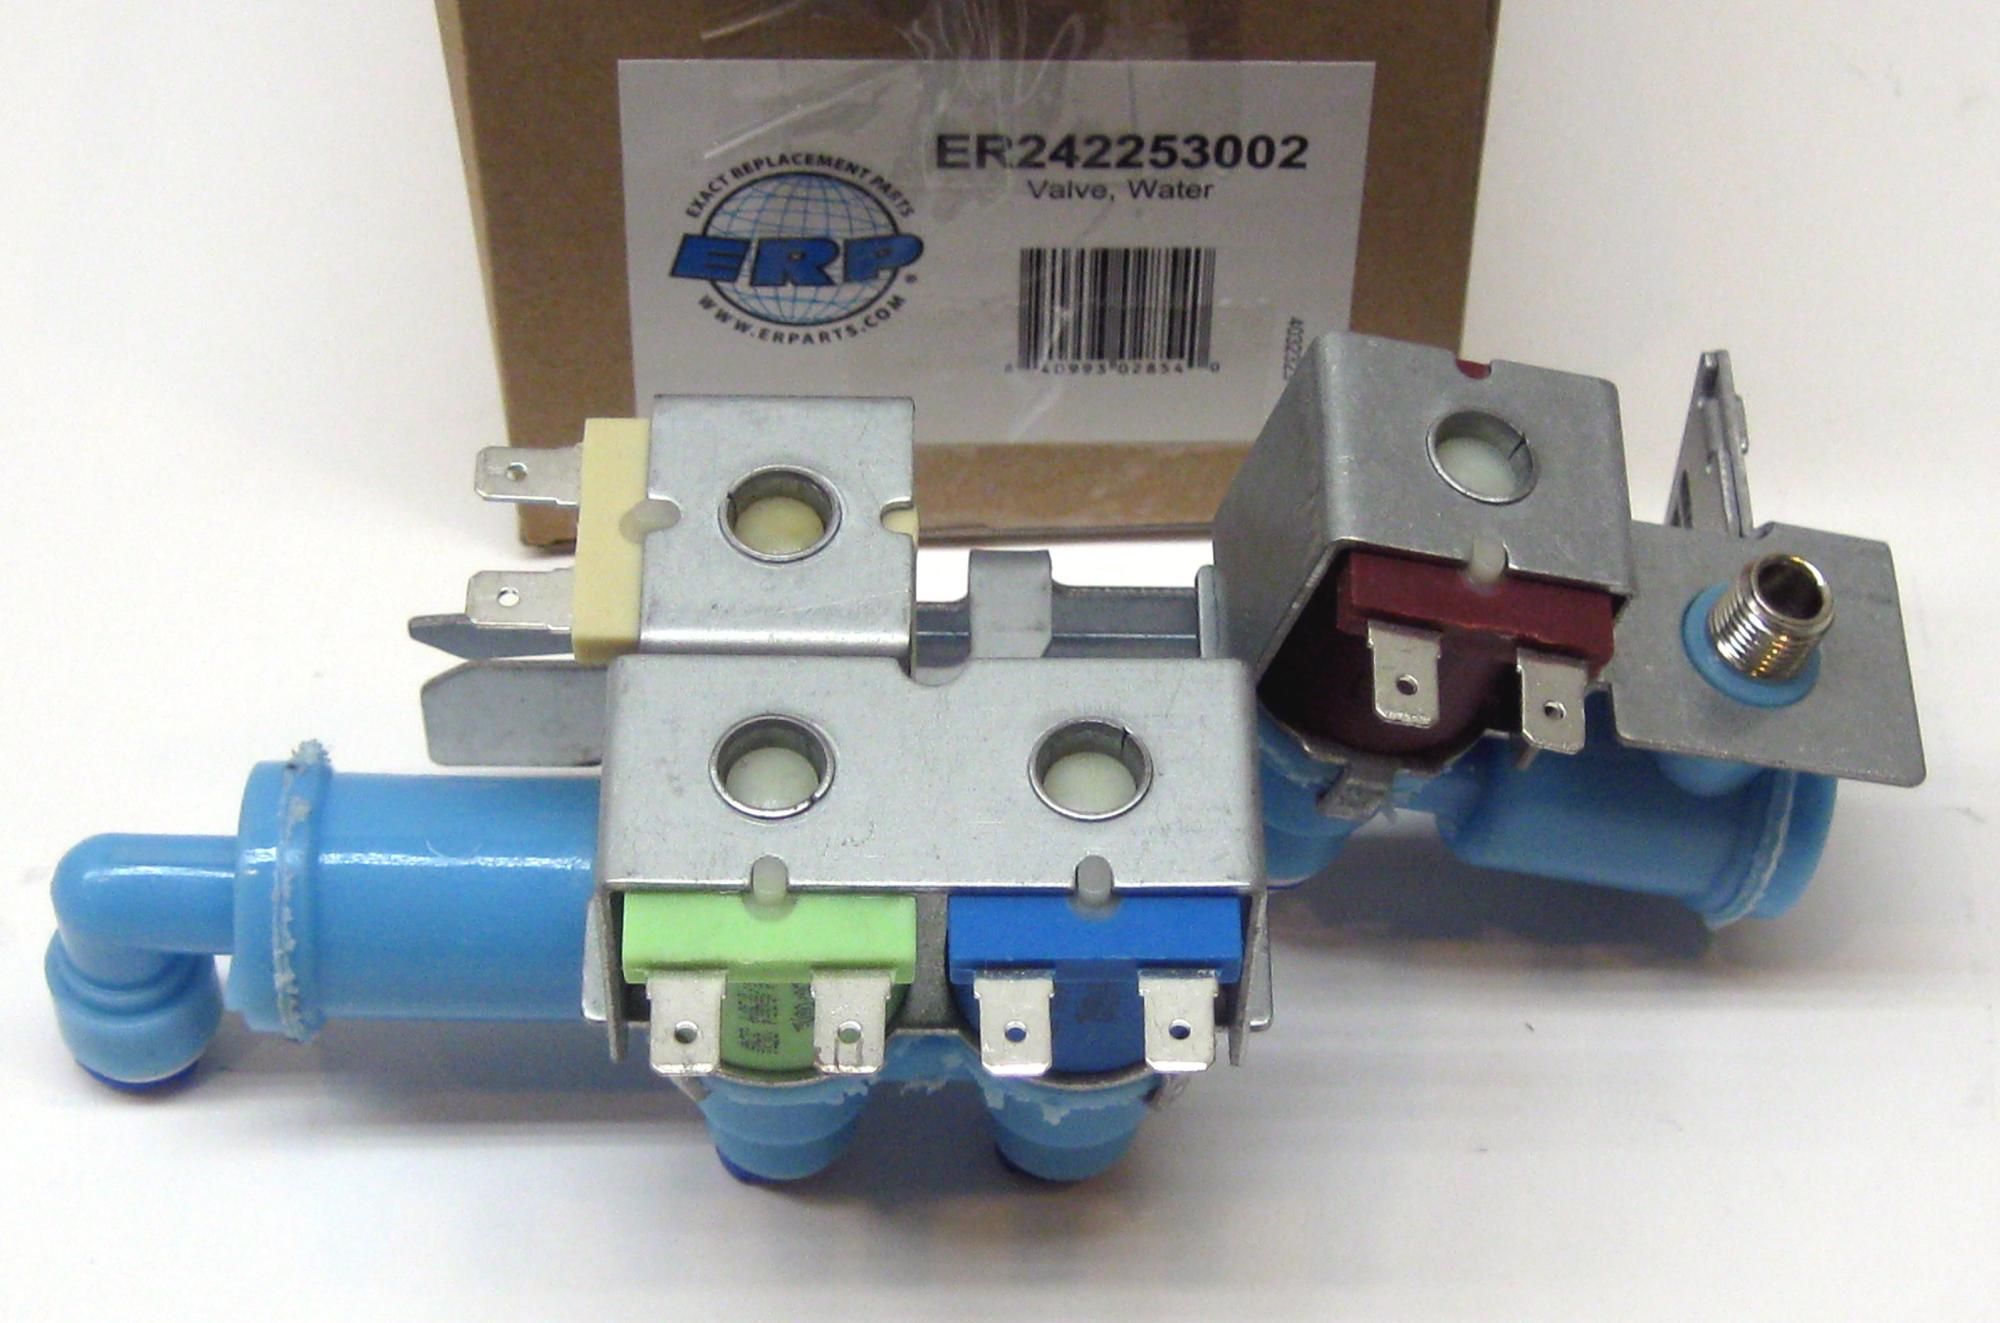 hight resolution of exact replacement refrigerator water valve for electrolux part number 242253002